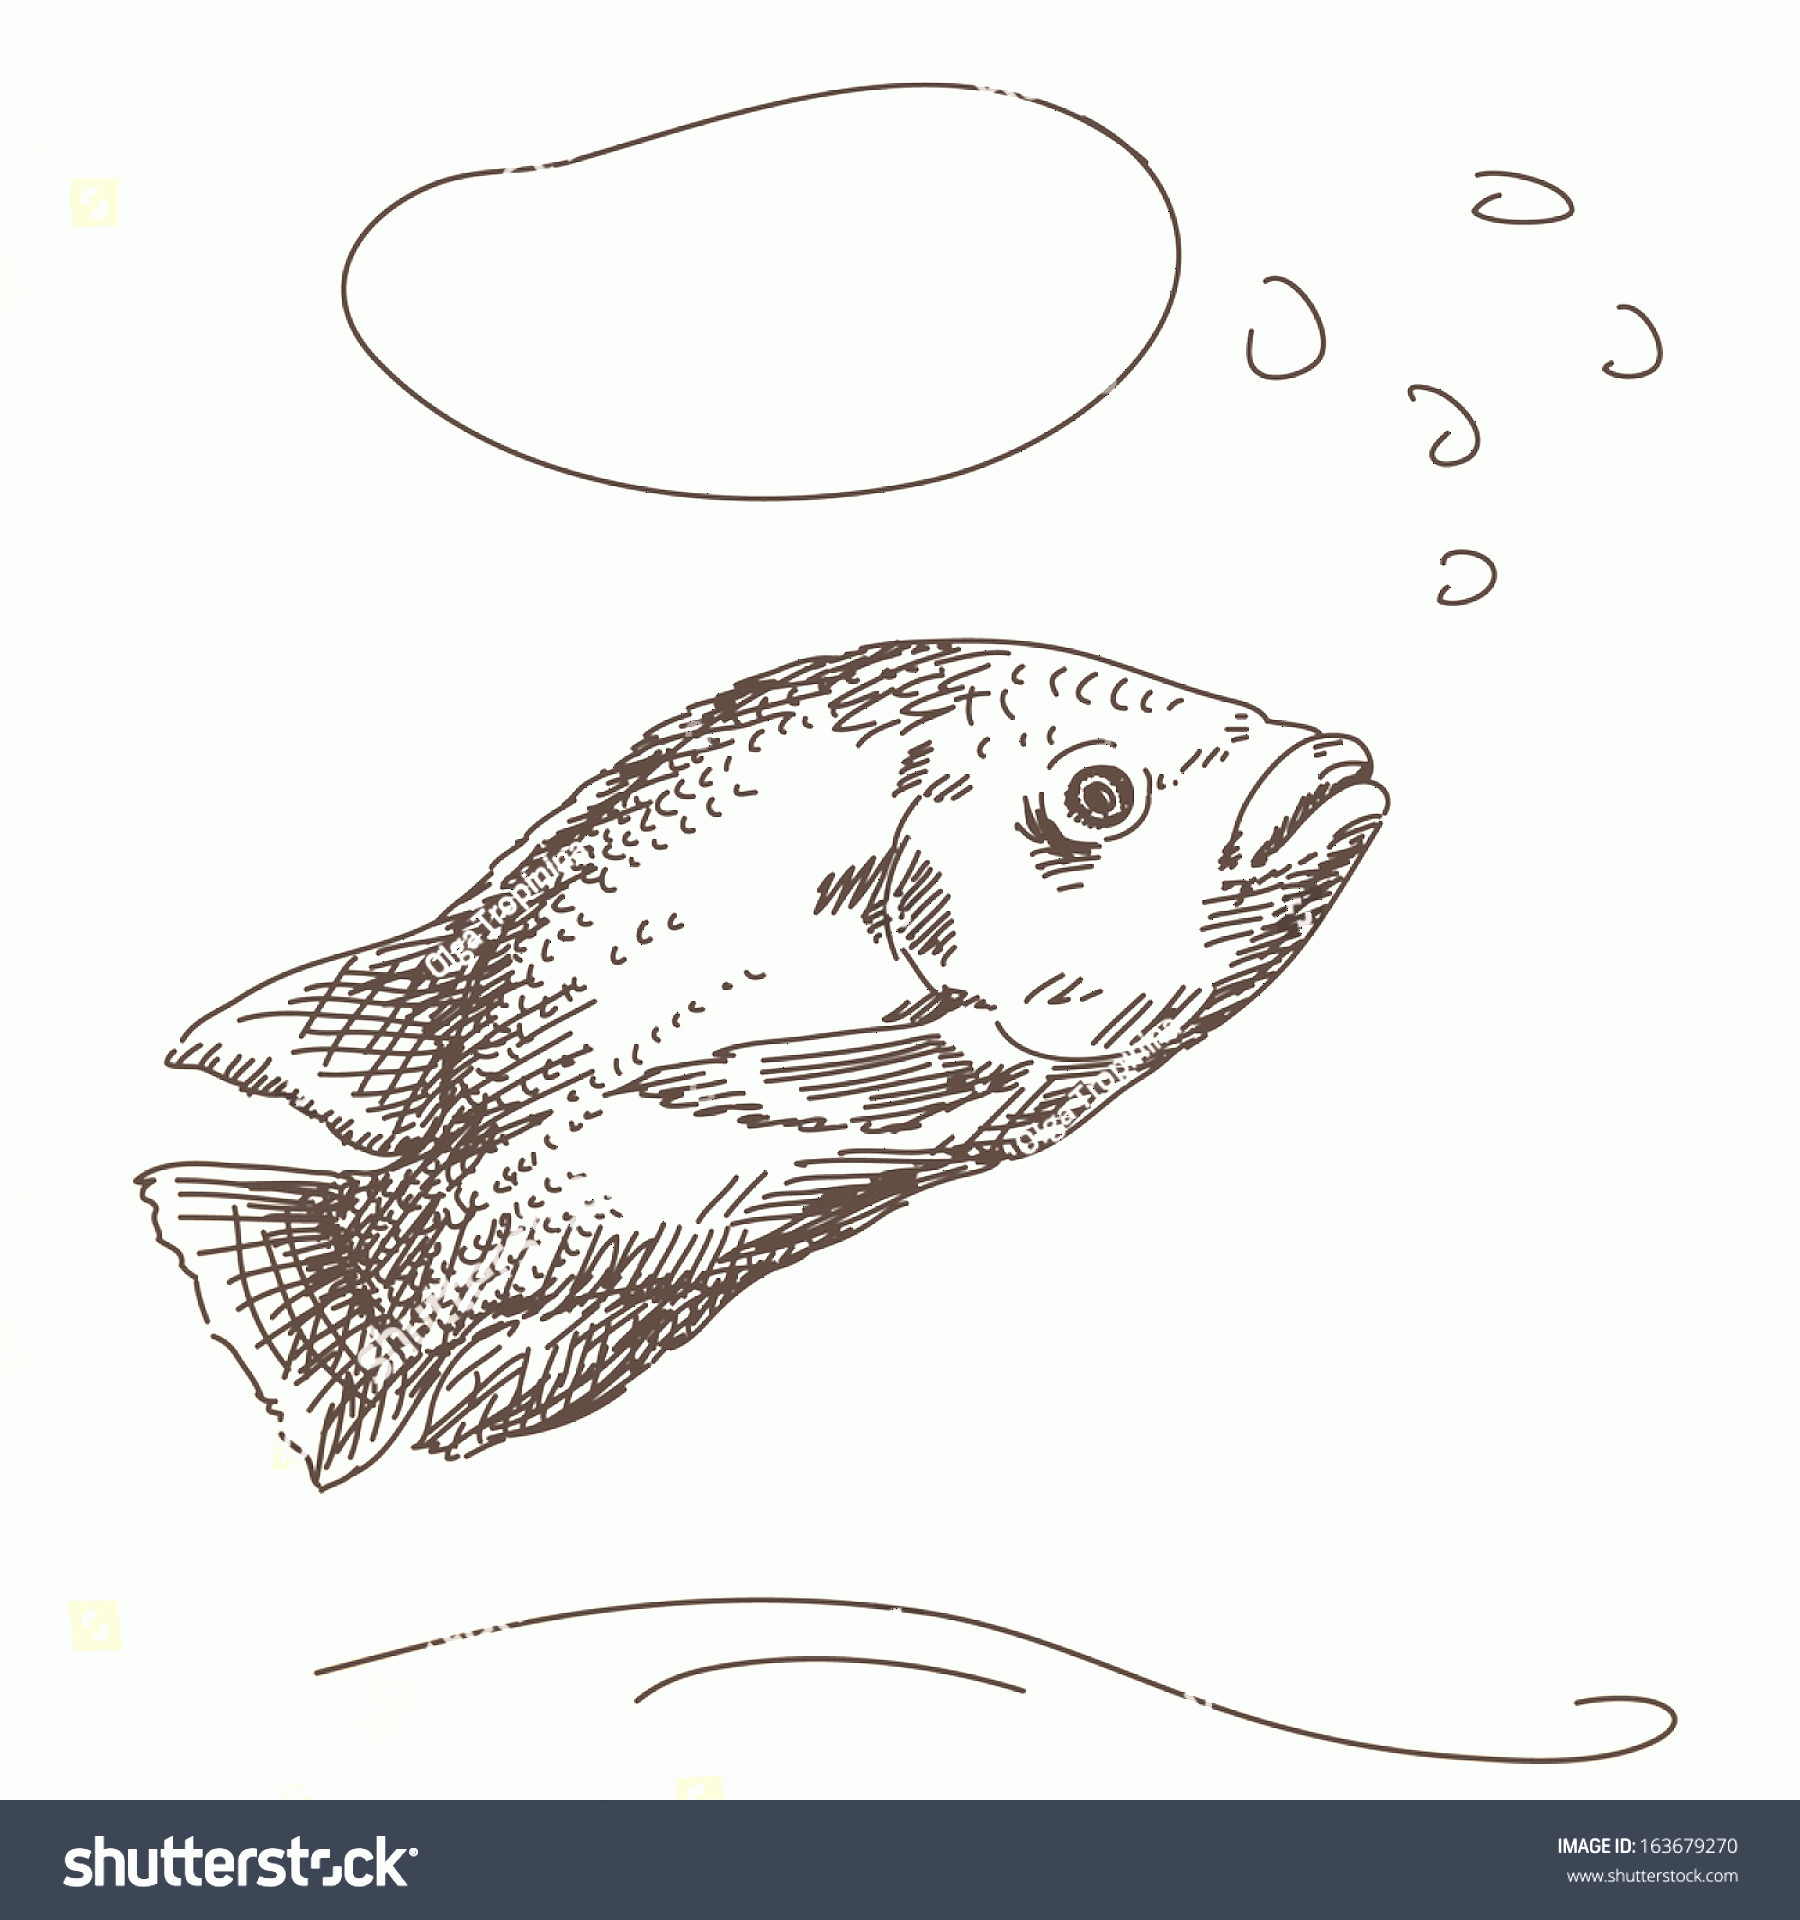 Thought Bubble Vector Sketch: Sketch Fish Thought Bubble Vector